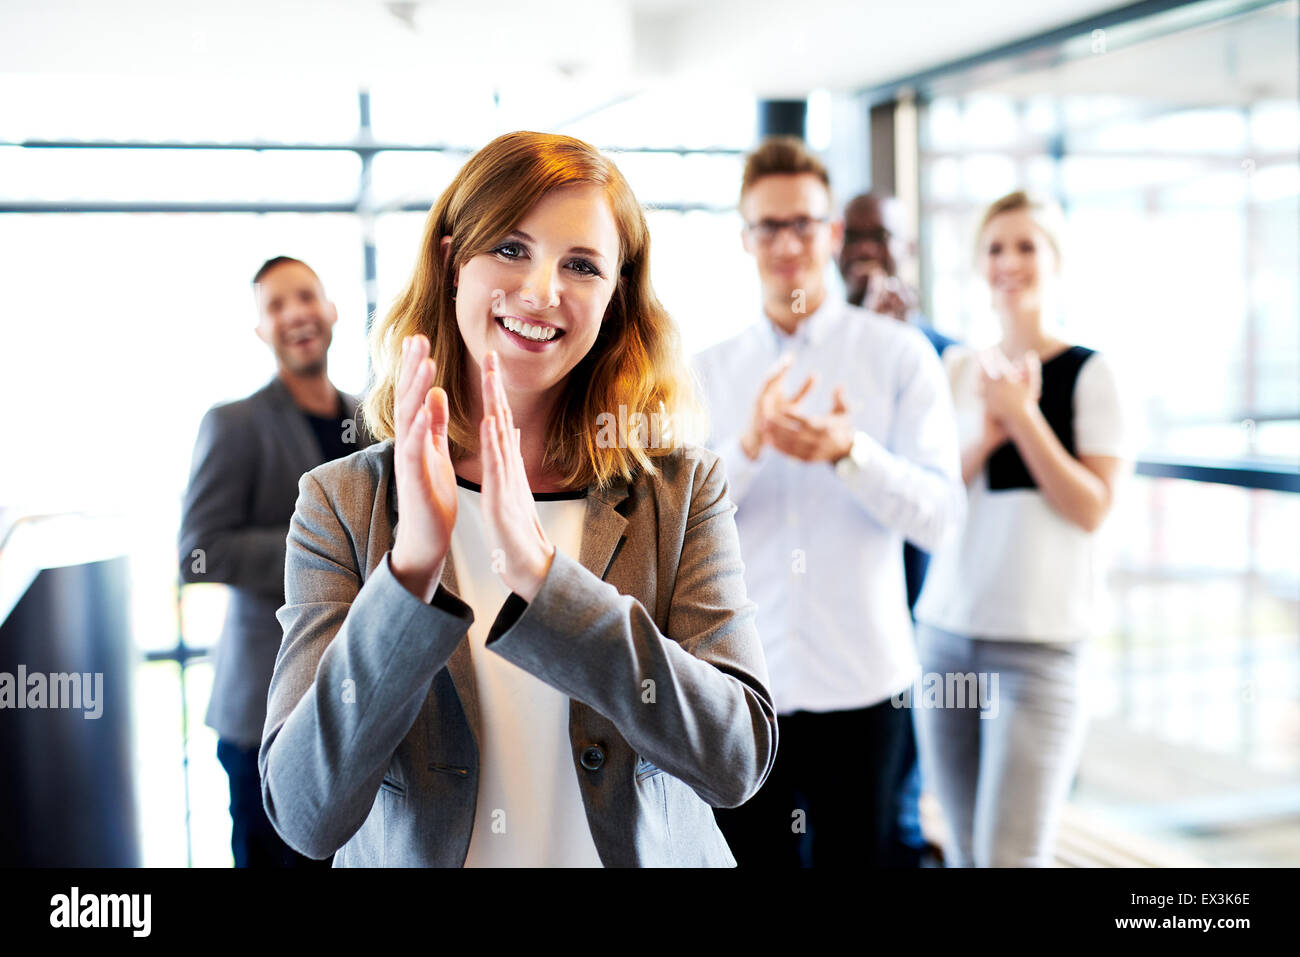 Young white female executive standing in front of colleagues clapping and smiling - Stock Image